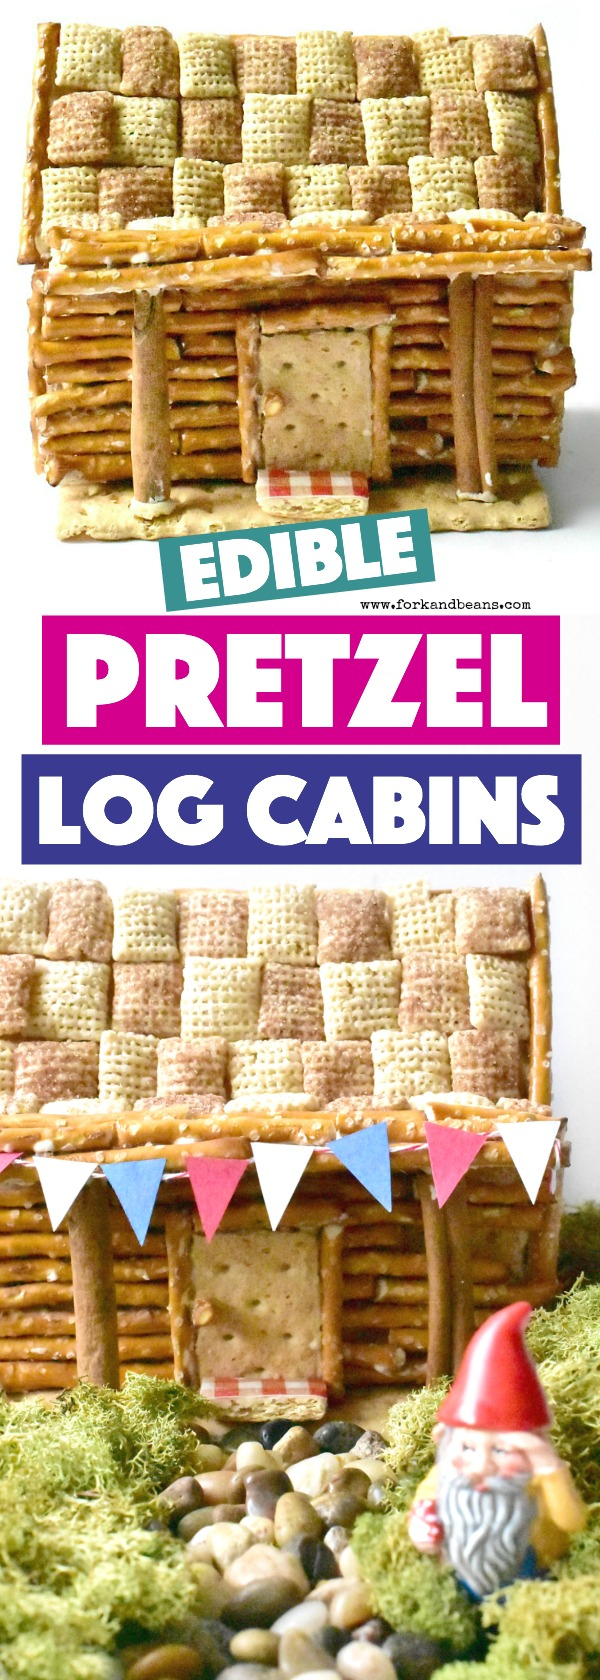 Memorialize this summer by making your own Edible Pretzel Log Cabin, created with pretzels and cereal!